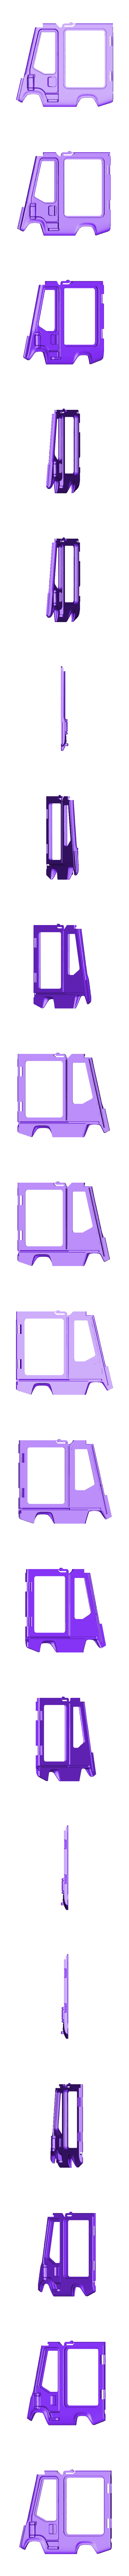 6_1L_Side_Simple_L.stl Download free STL file Piggy Van Jr • 3D printing object, Slava_Z